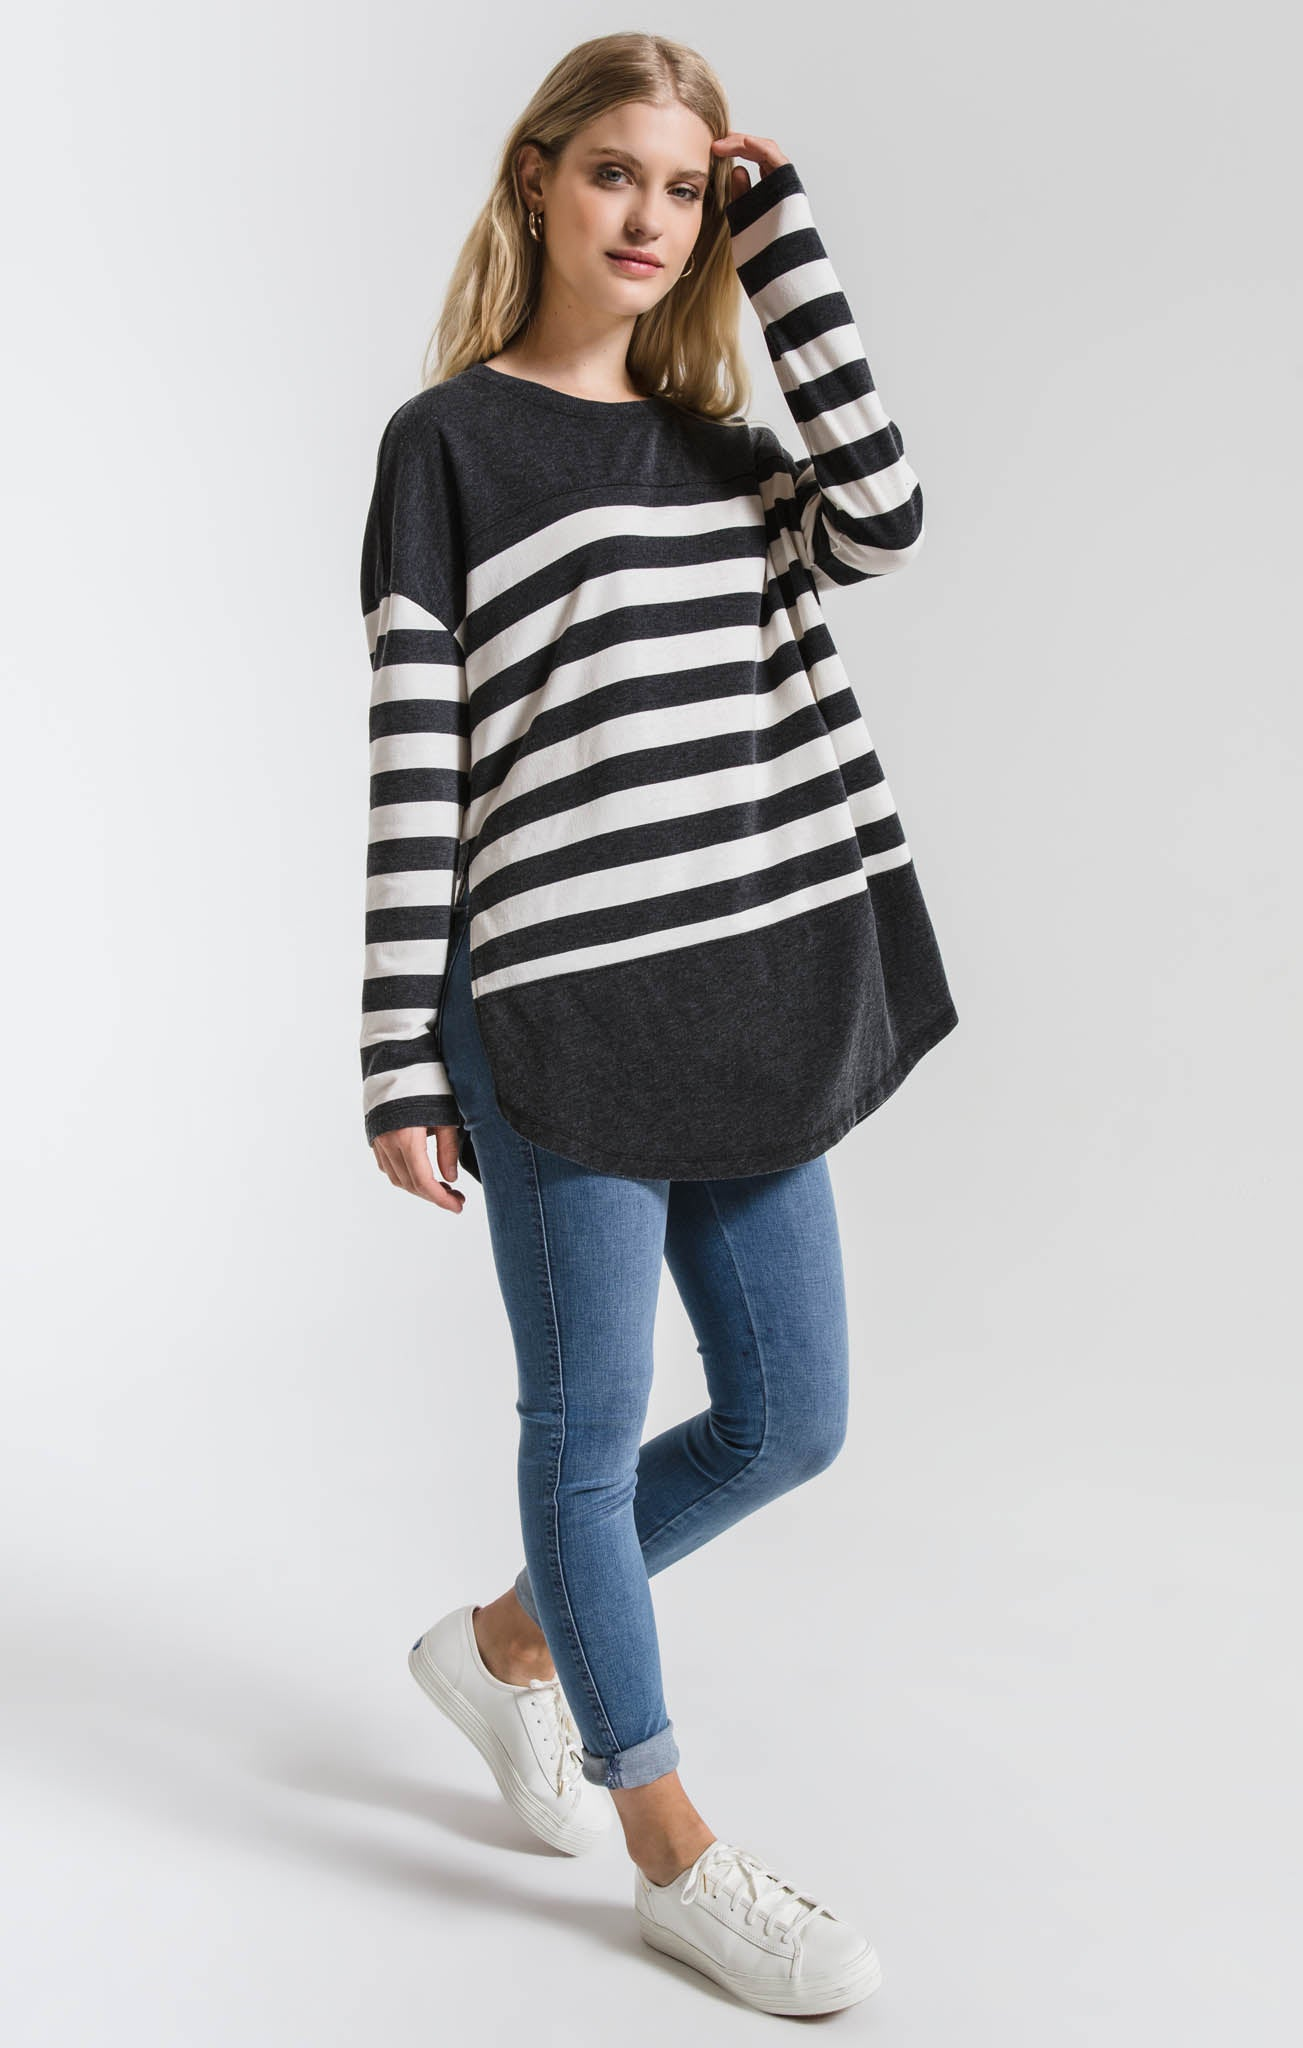 Tops The Modern Stripe Long Sleeve Top Black/Champagne Mist